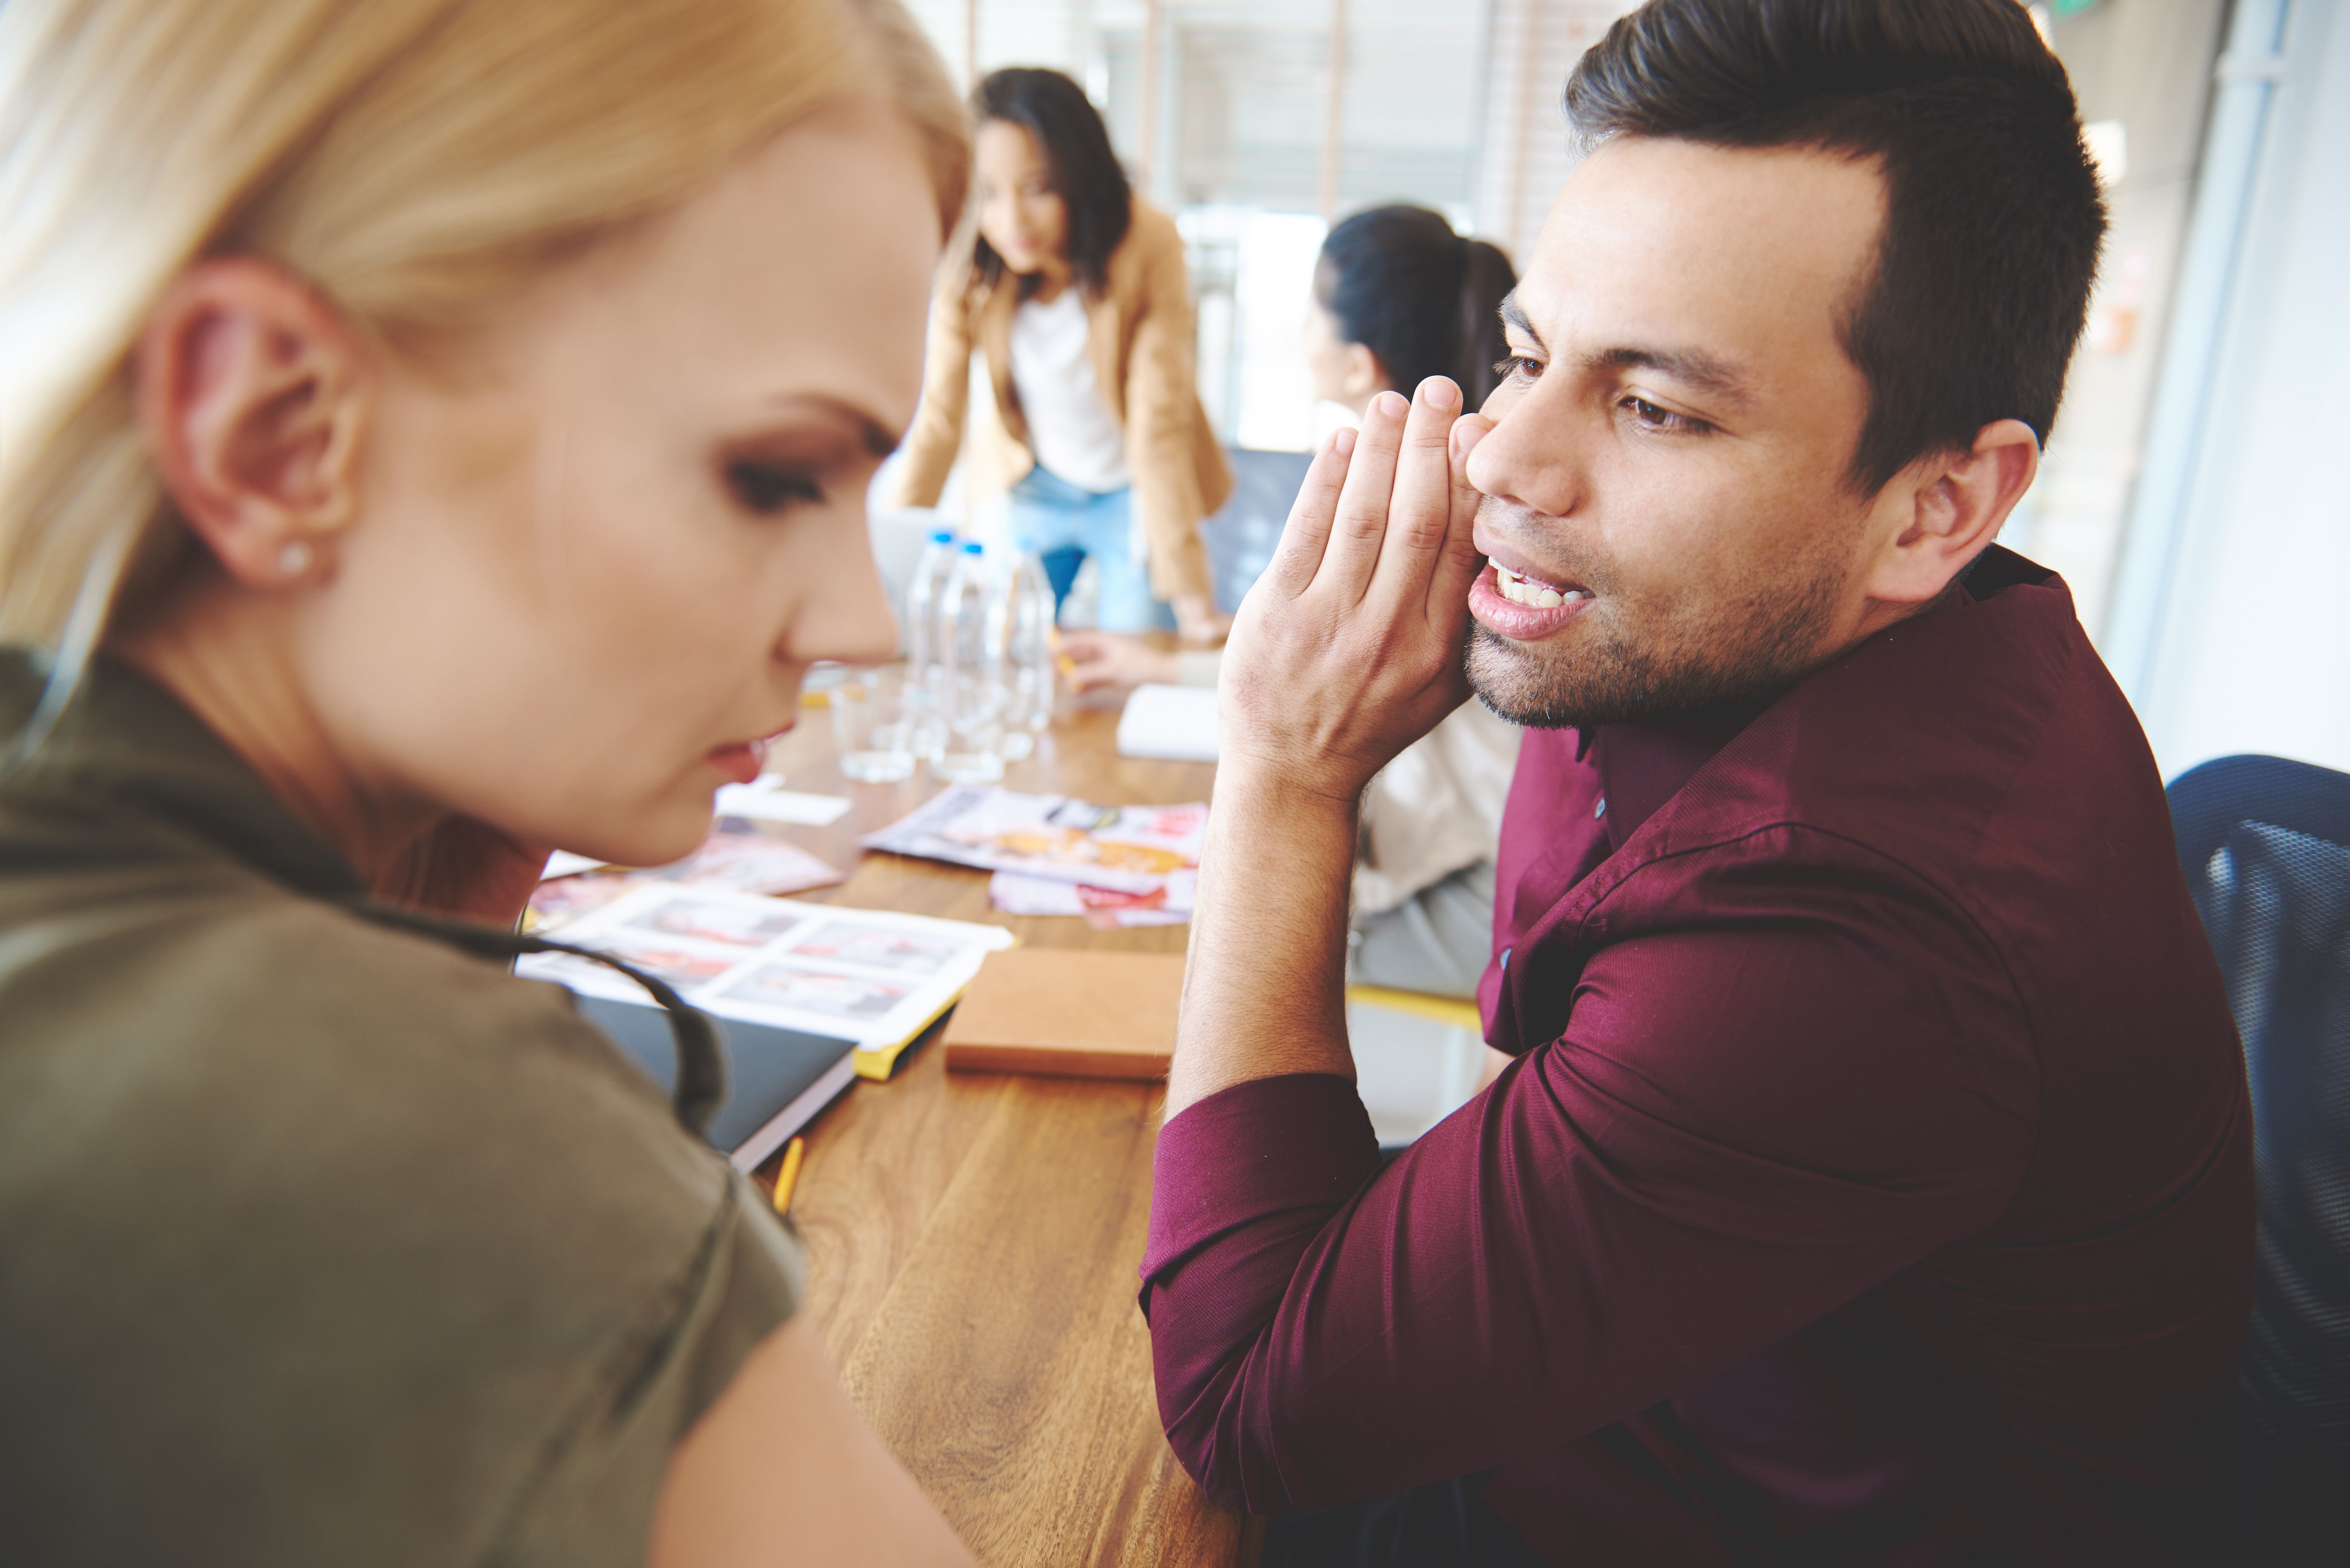 A man and woman talking at work. | Source: Shutterstock